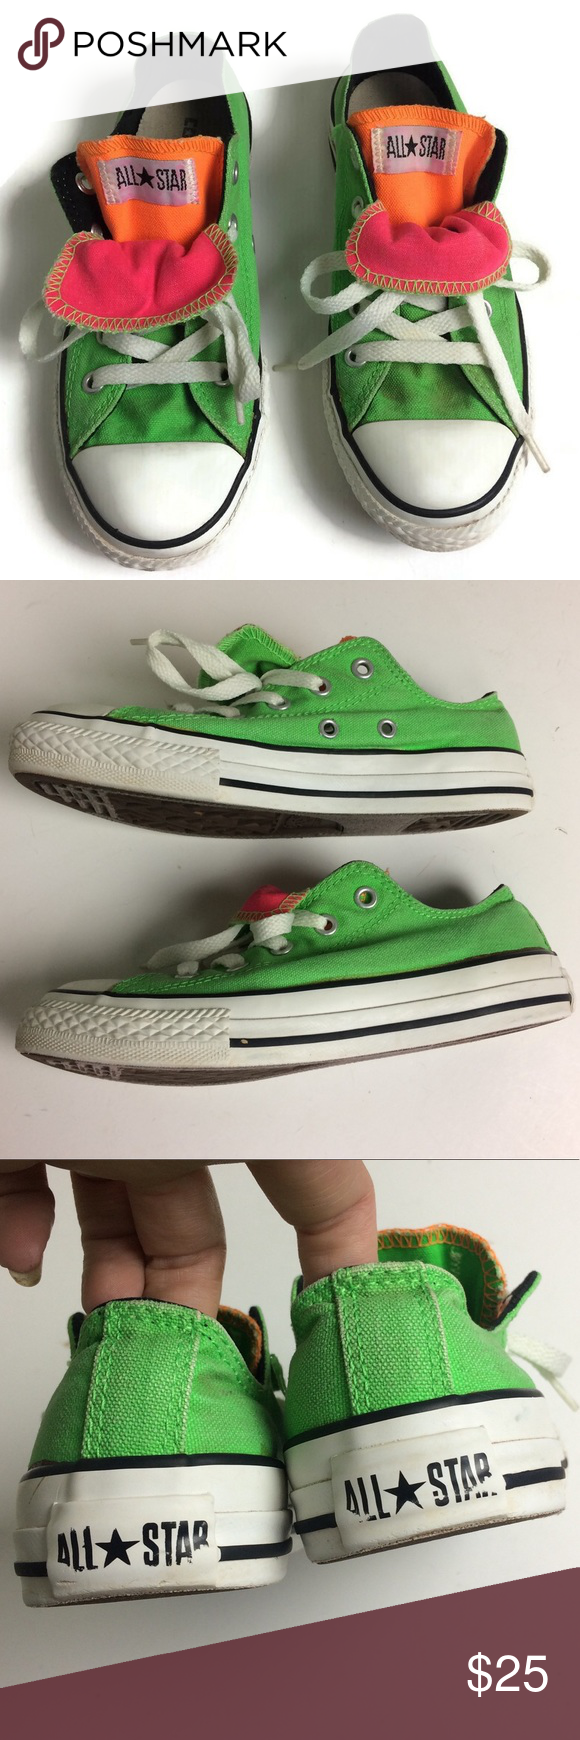 Converse Allstar Double Tongue Neon Low Top Size 1 Converse